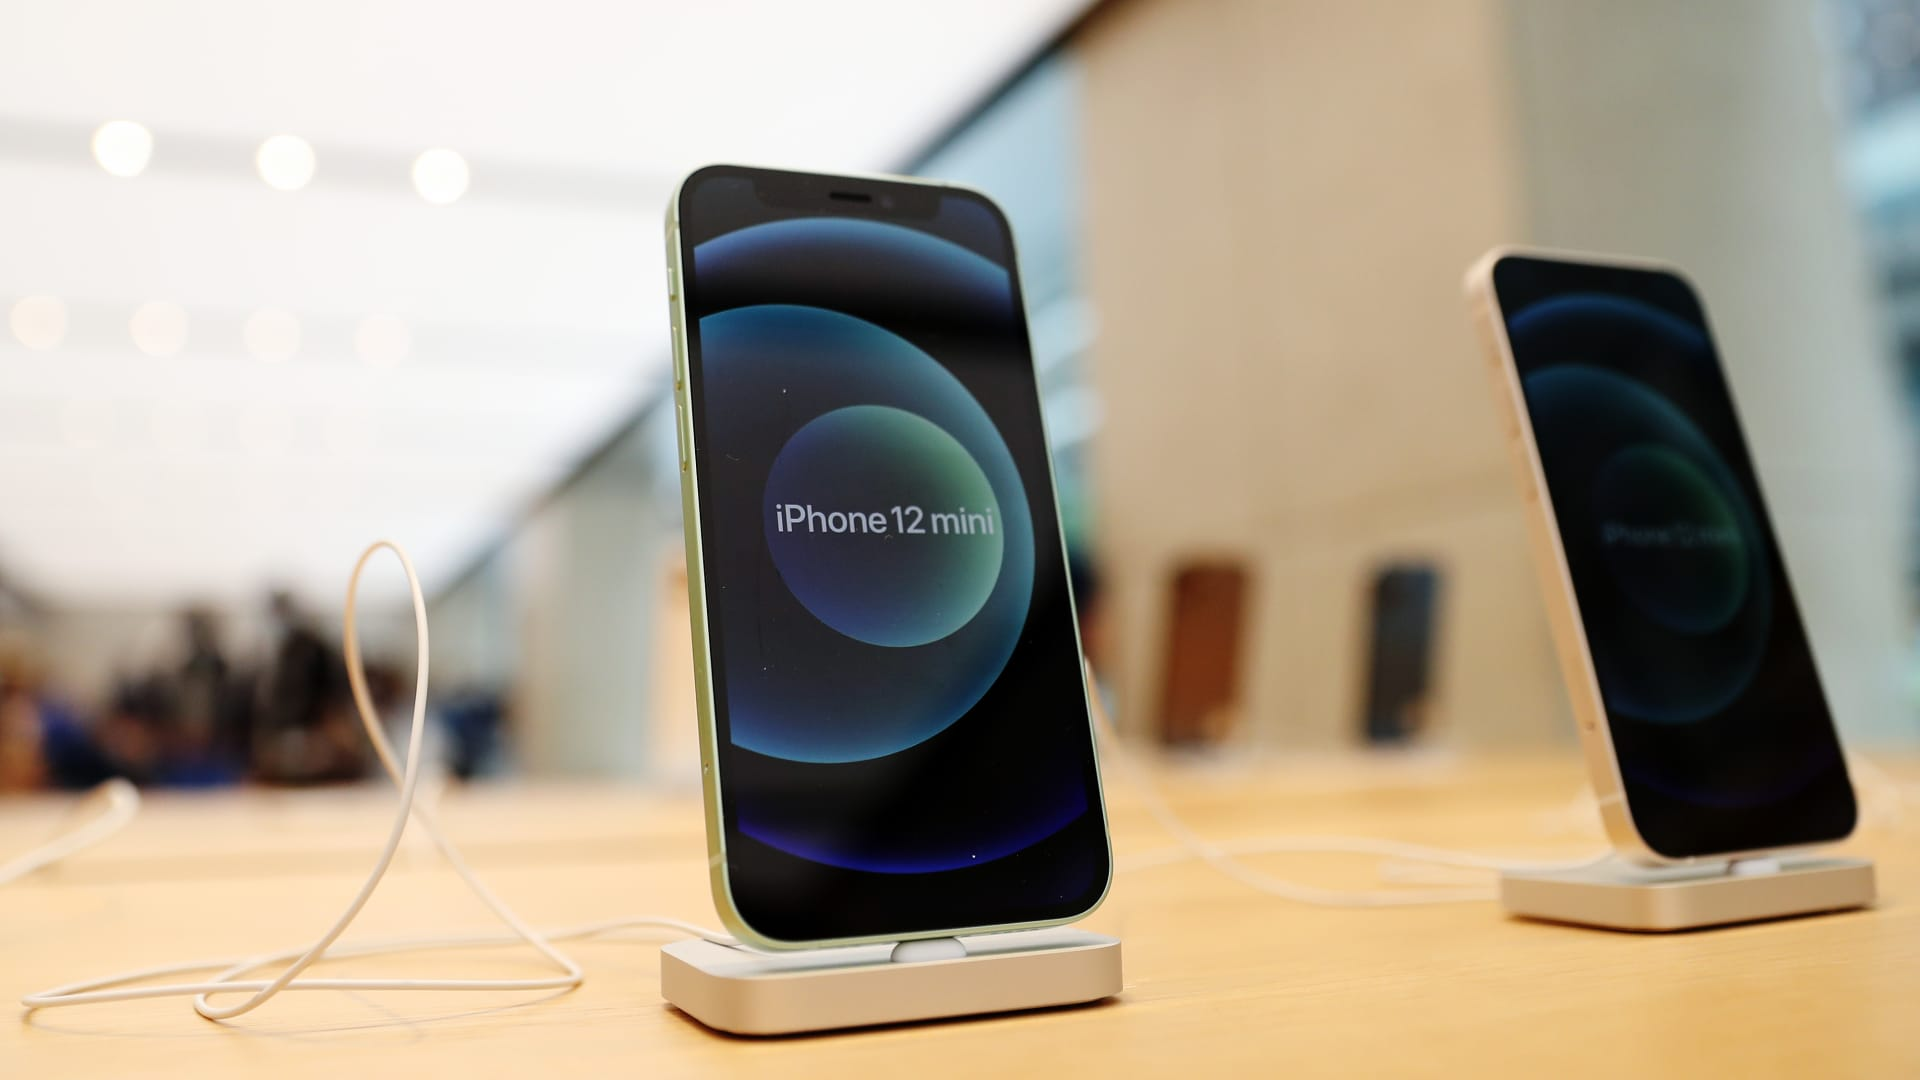 The Real Reason Apple Doesn't Plan to Release a New iPhone Mini